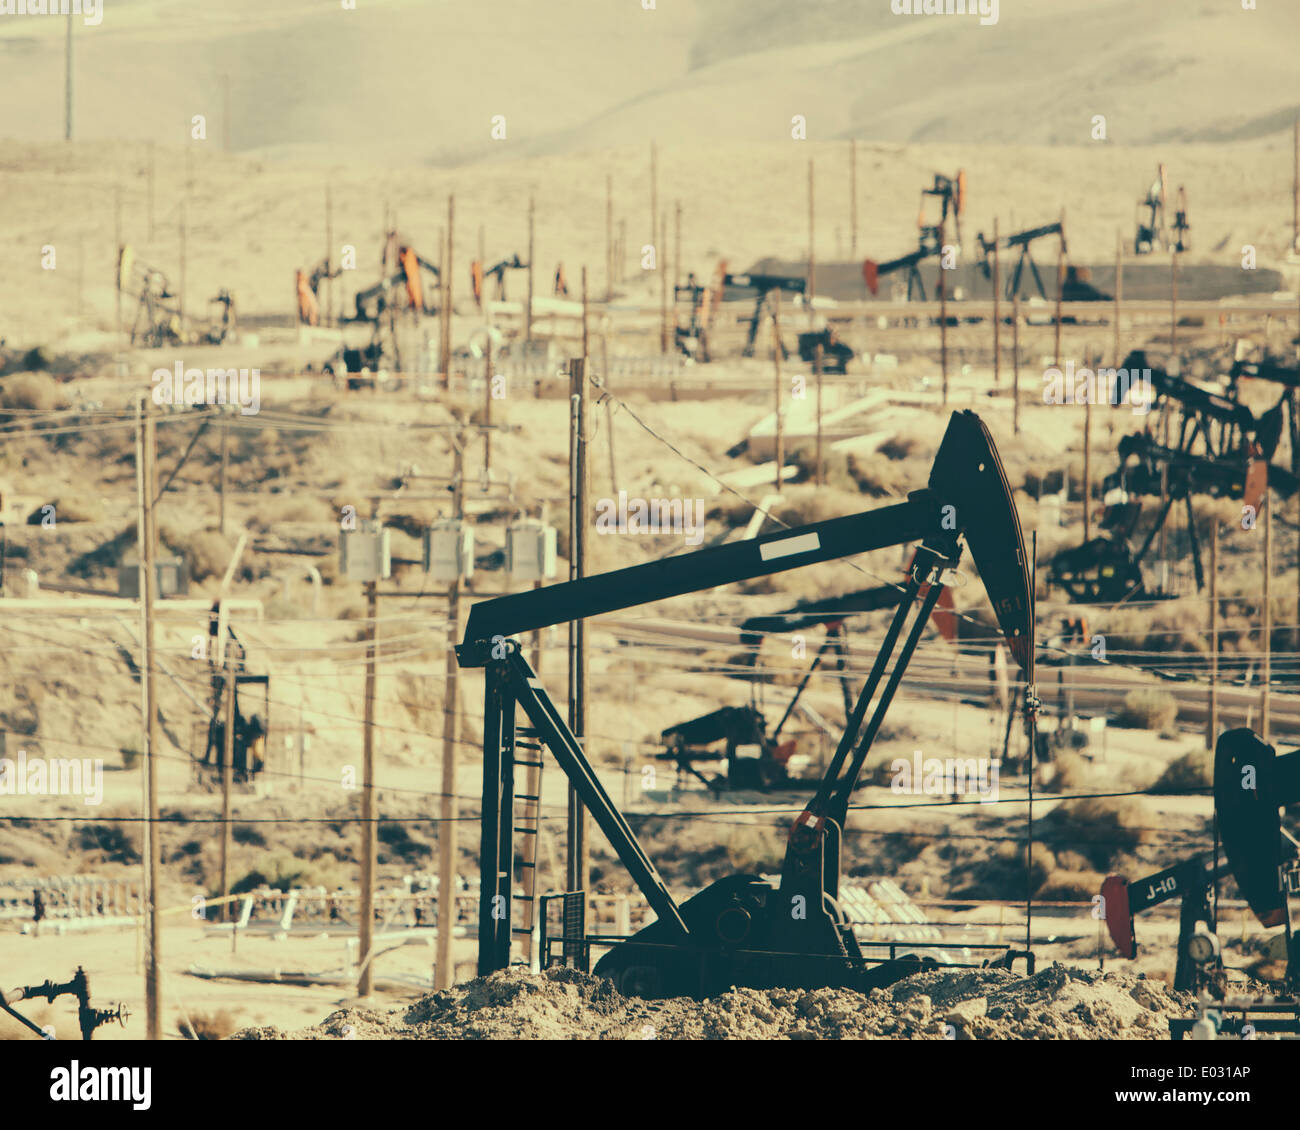 Crude oil extraction from Monterey Shale near Bakersfield California USA. - Stock Image